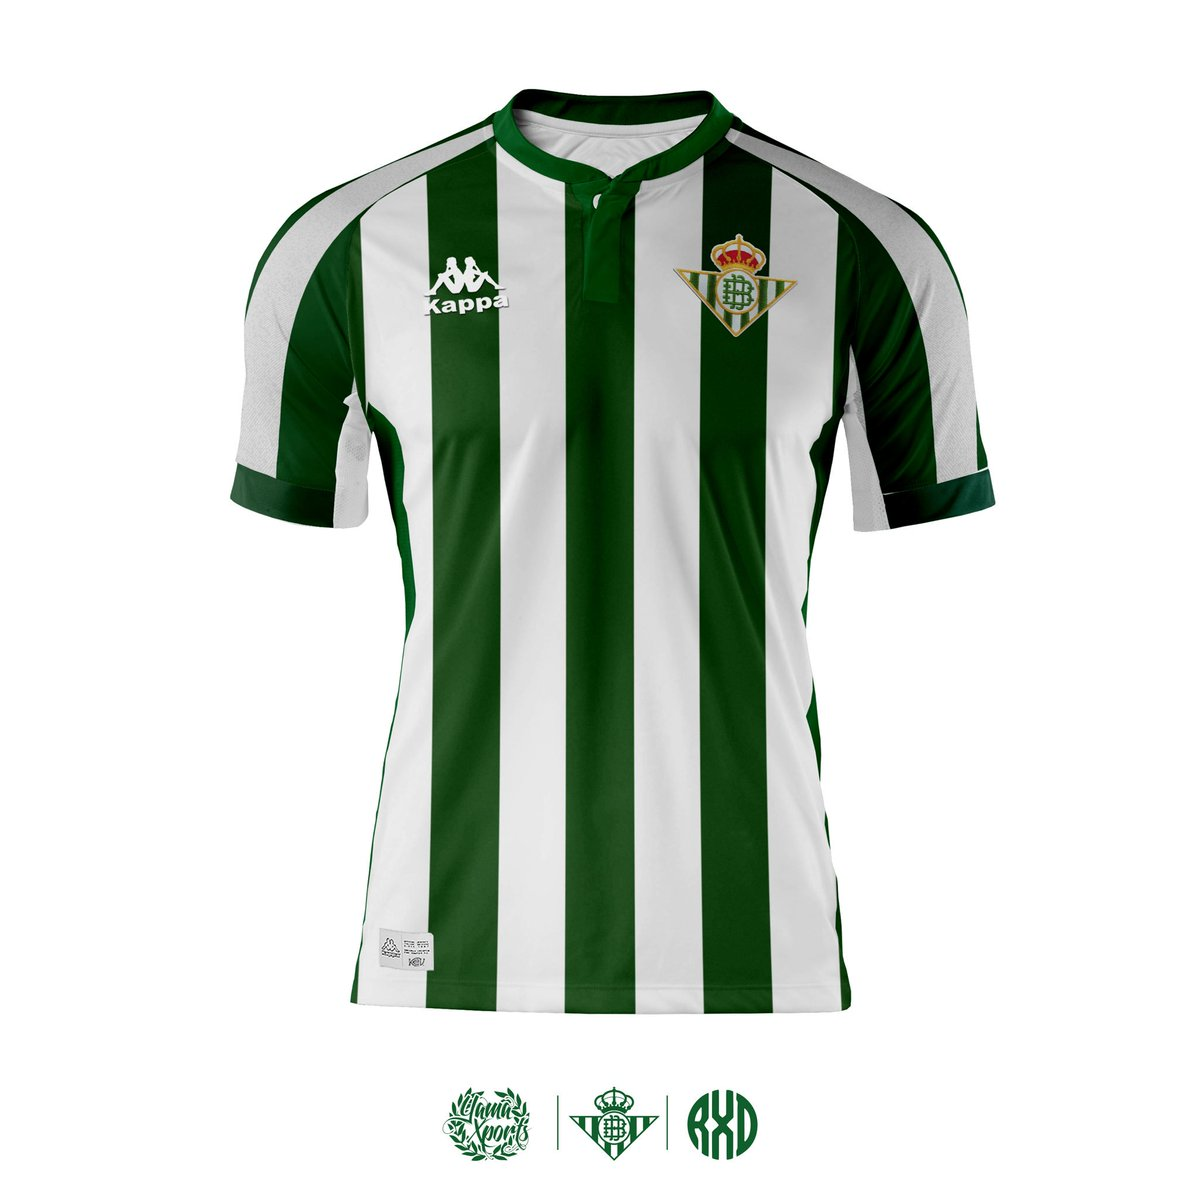 Camiseta Real Betis hombre